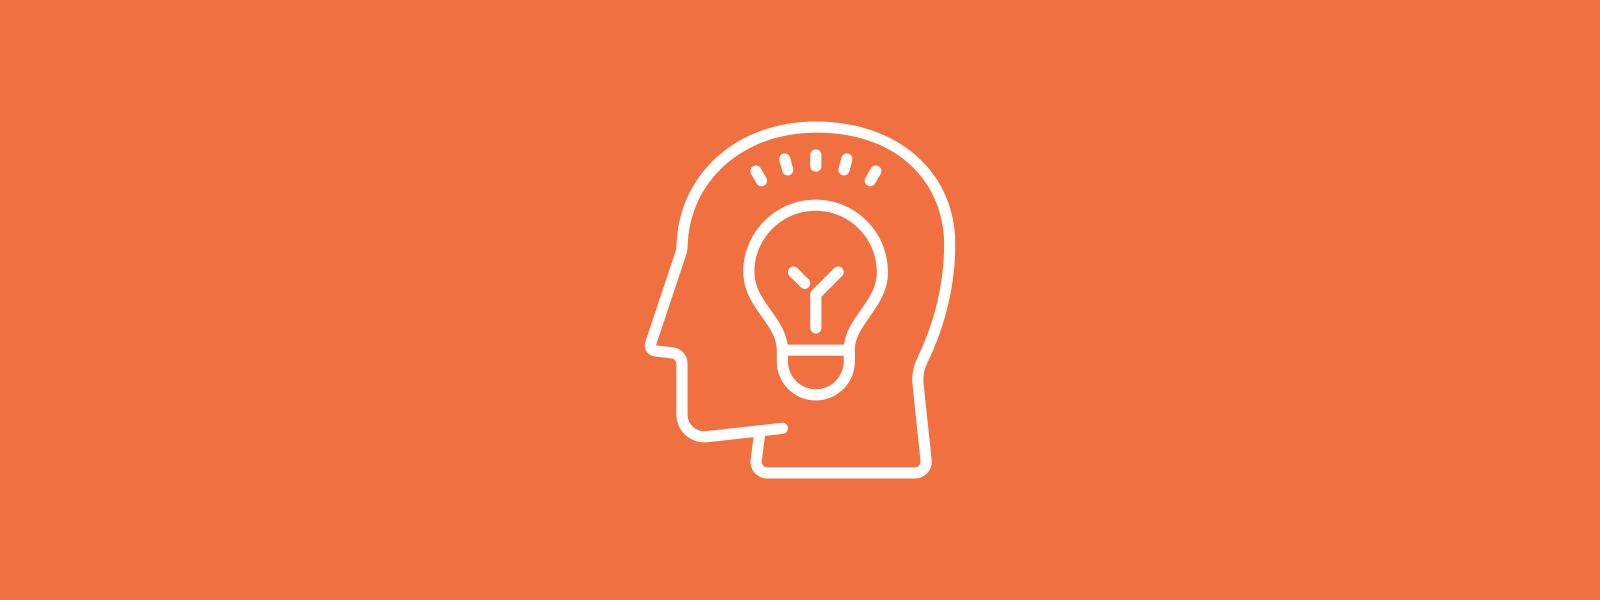 Icon background of head and idea bulb